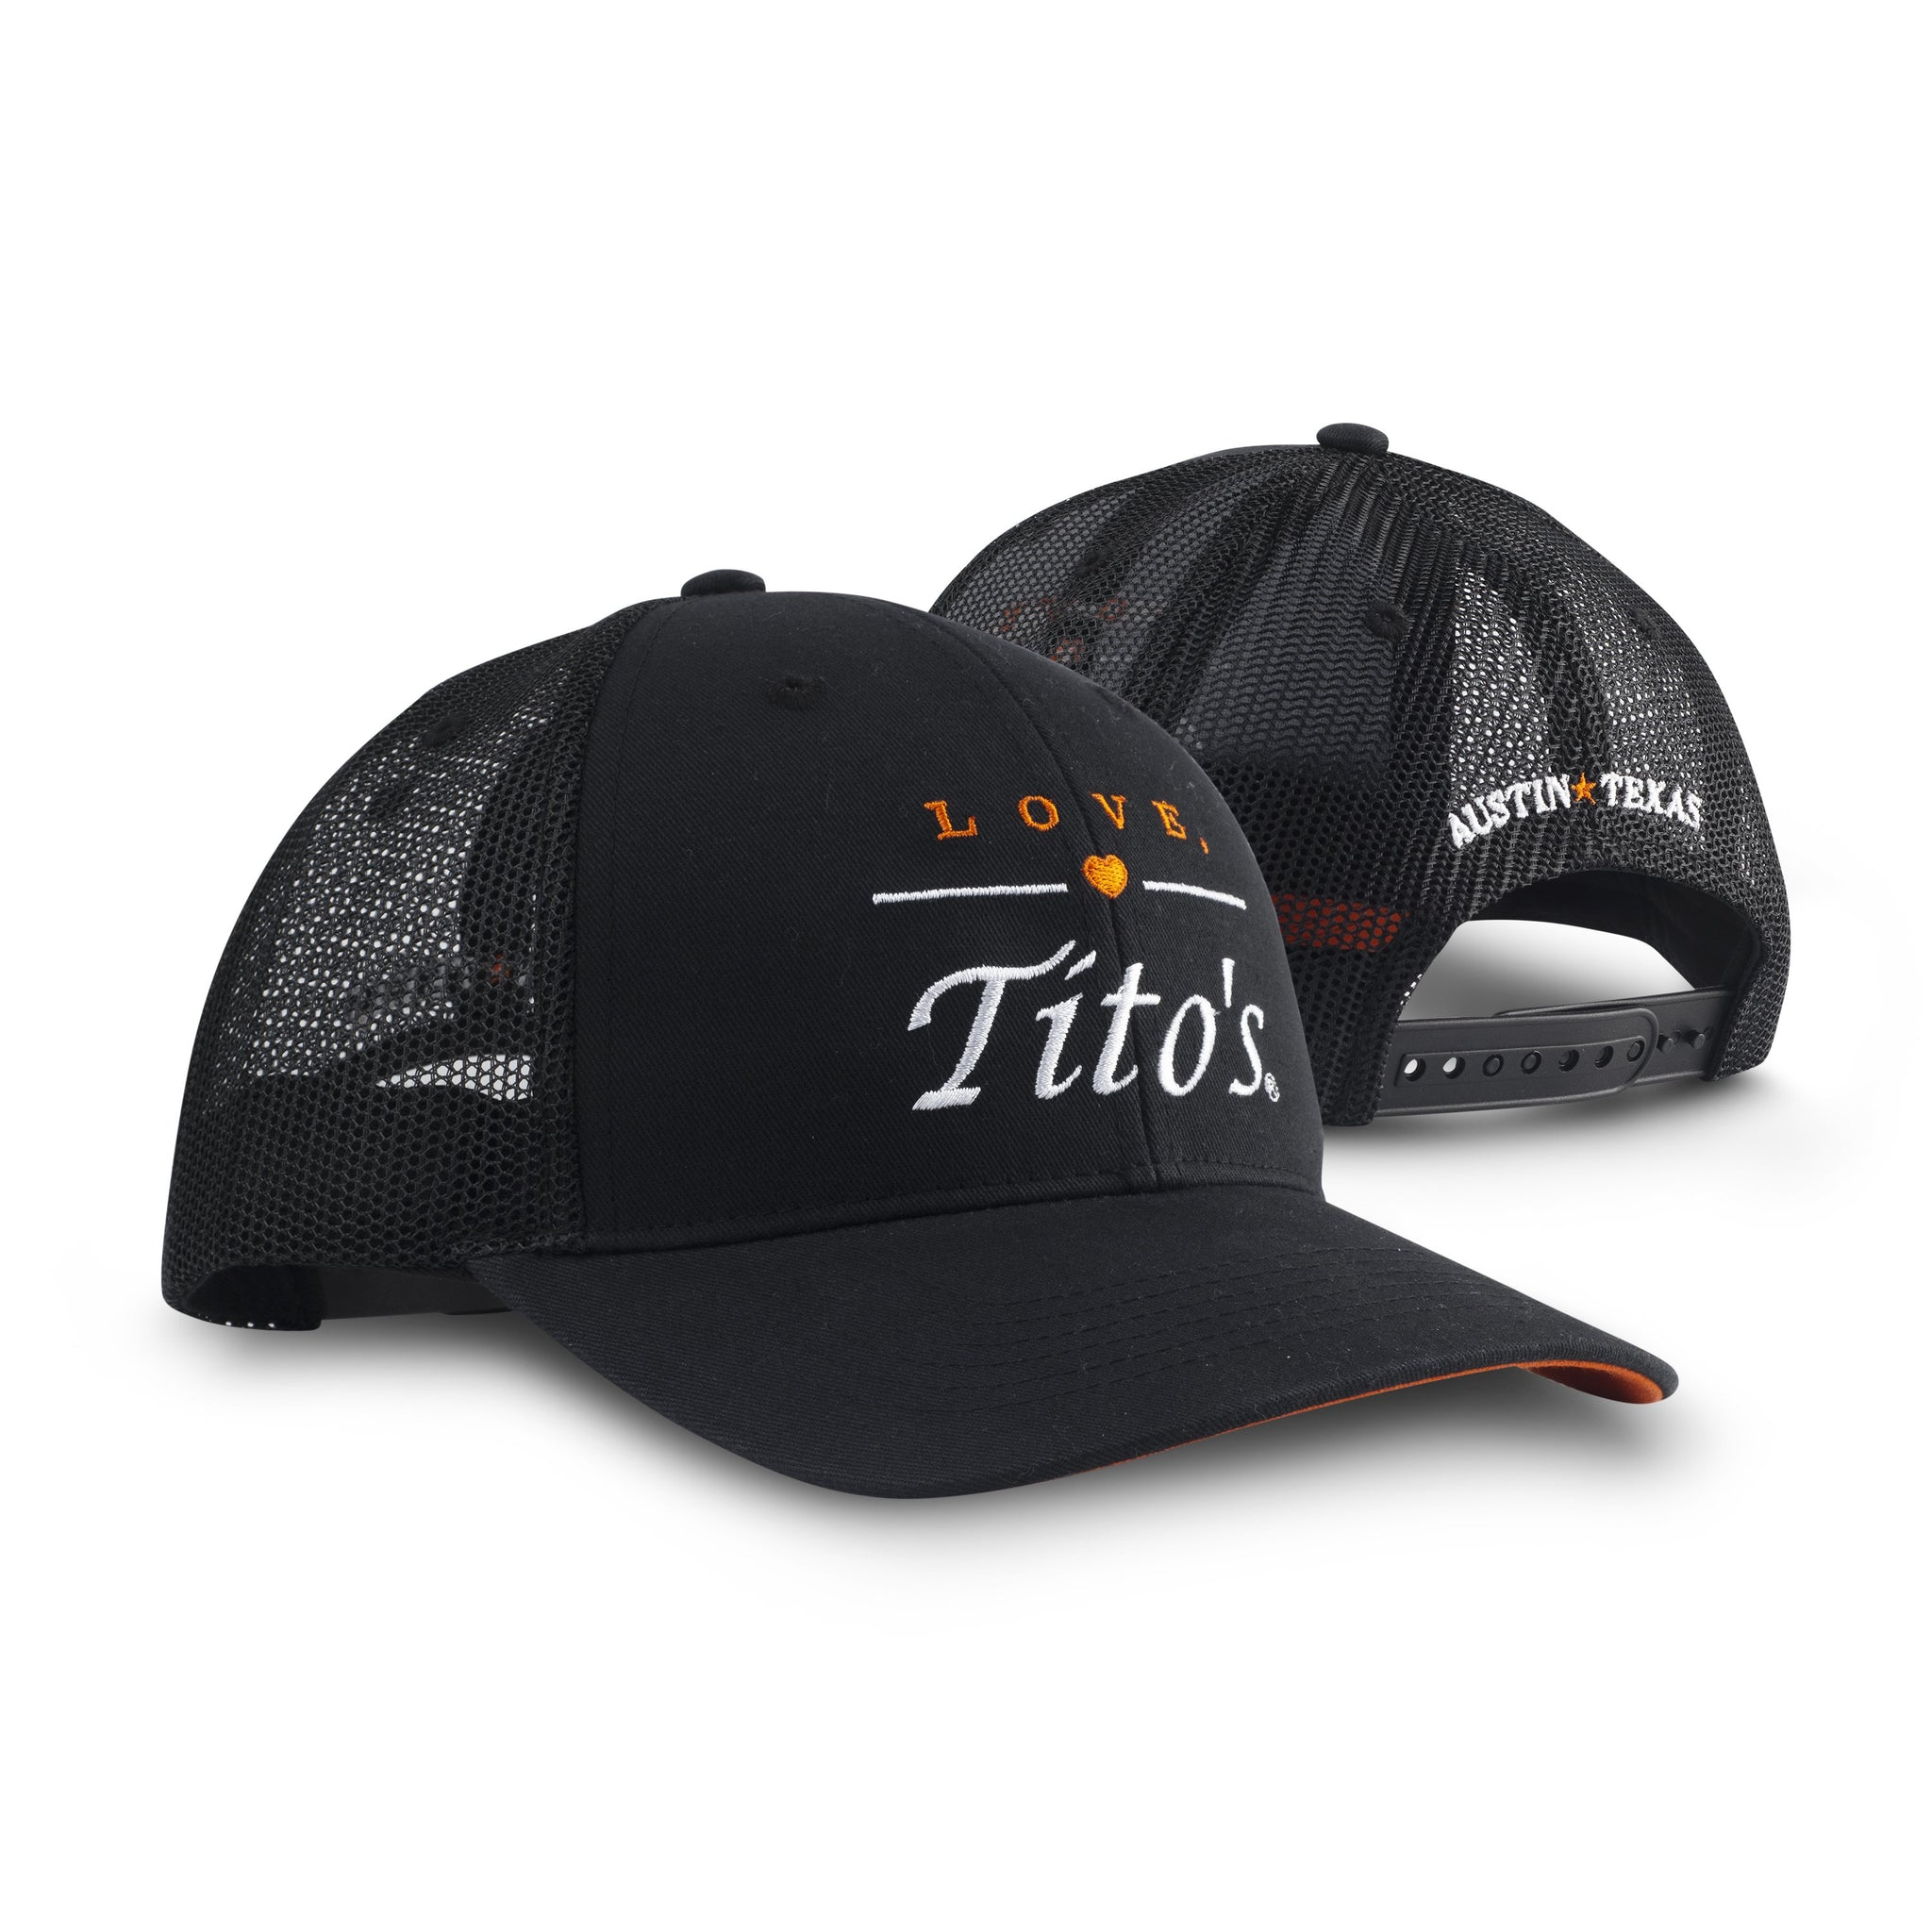 Front and back view of black trucker hat with embroidered Love, Tito's logo on the front and Austin Texas on the back